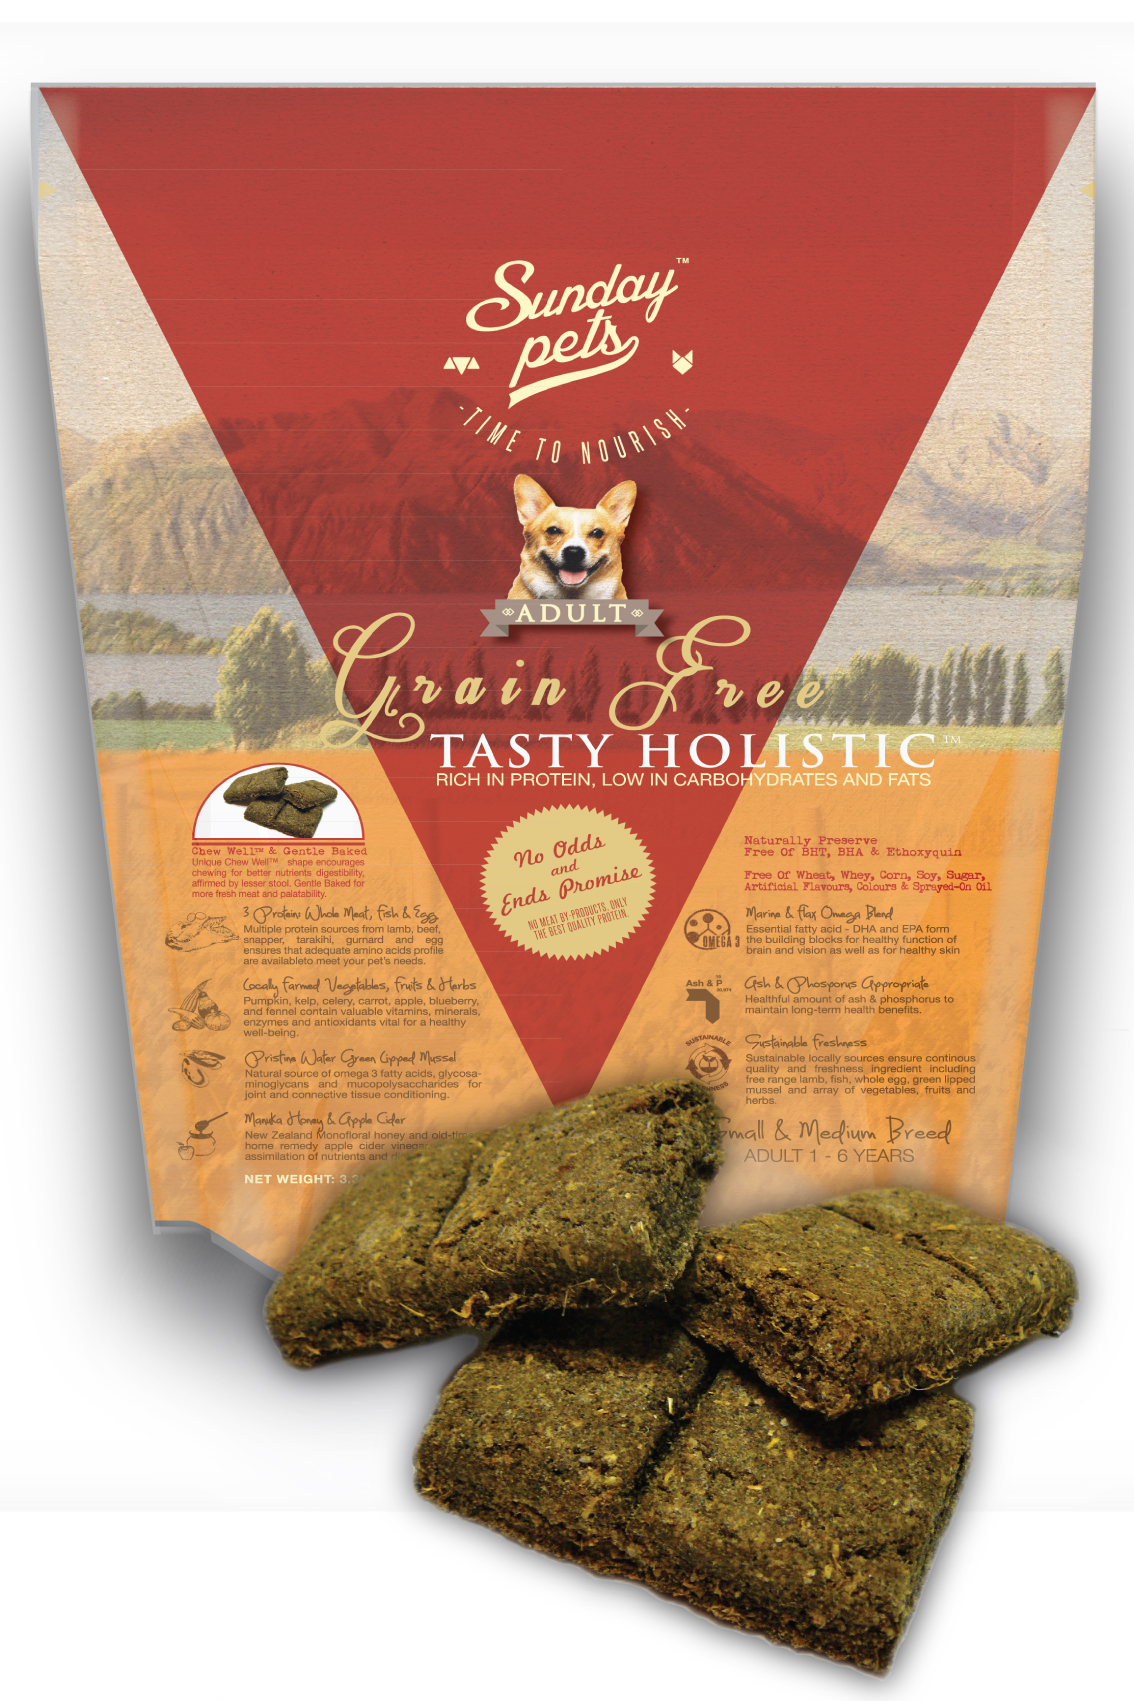 Sunday Pets Tasty Holistic Grain Free Adult 3.3lb